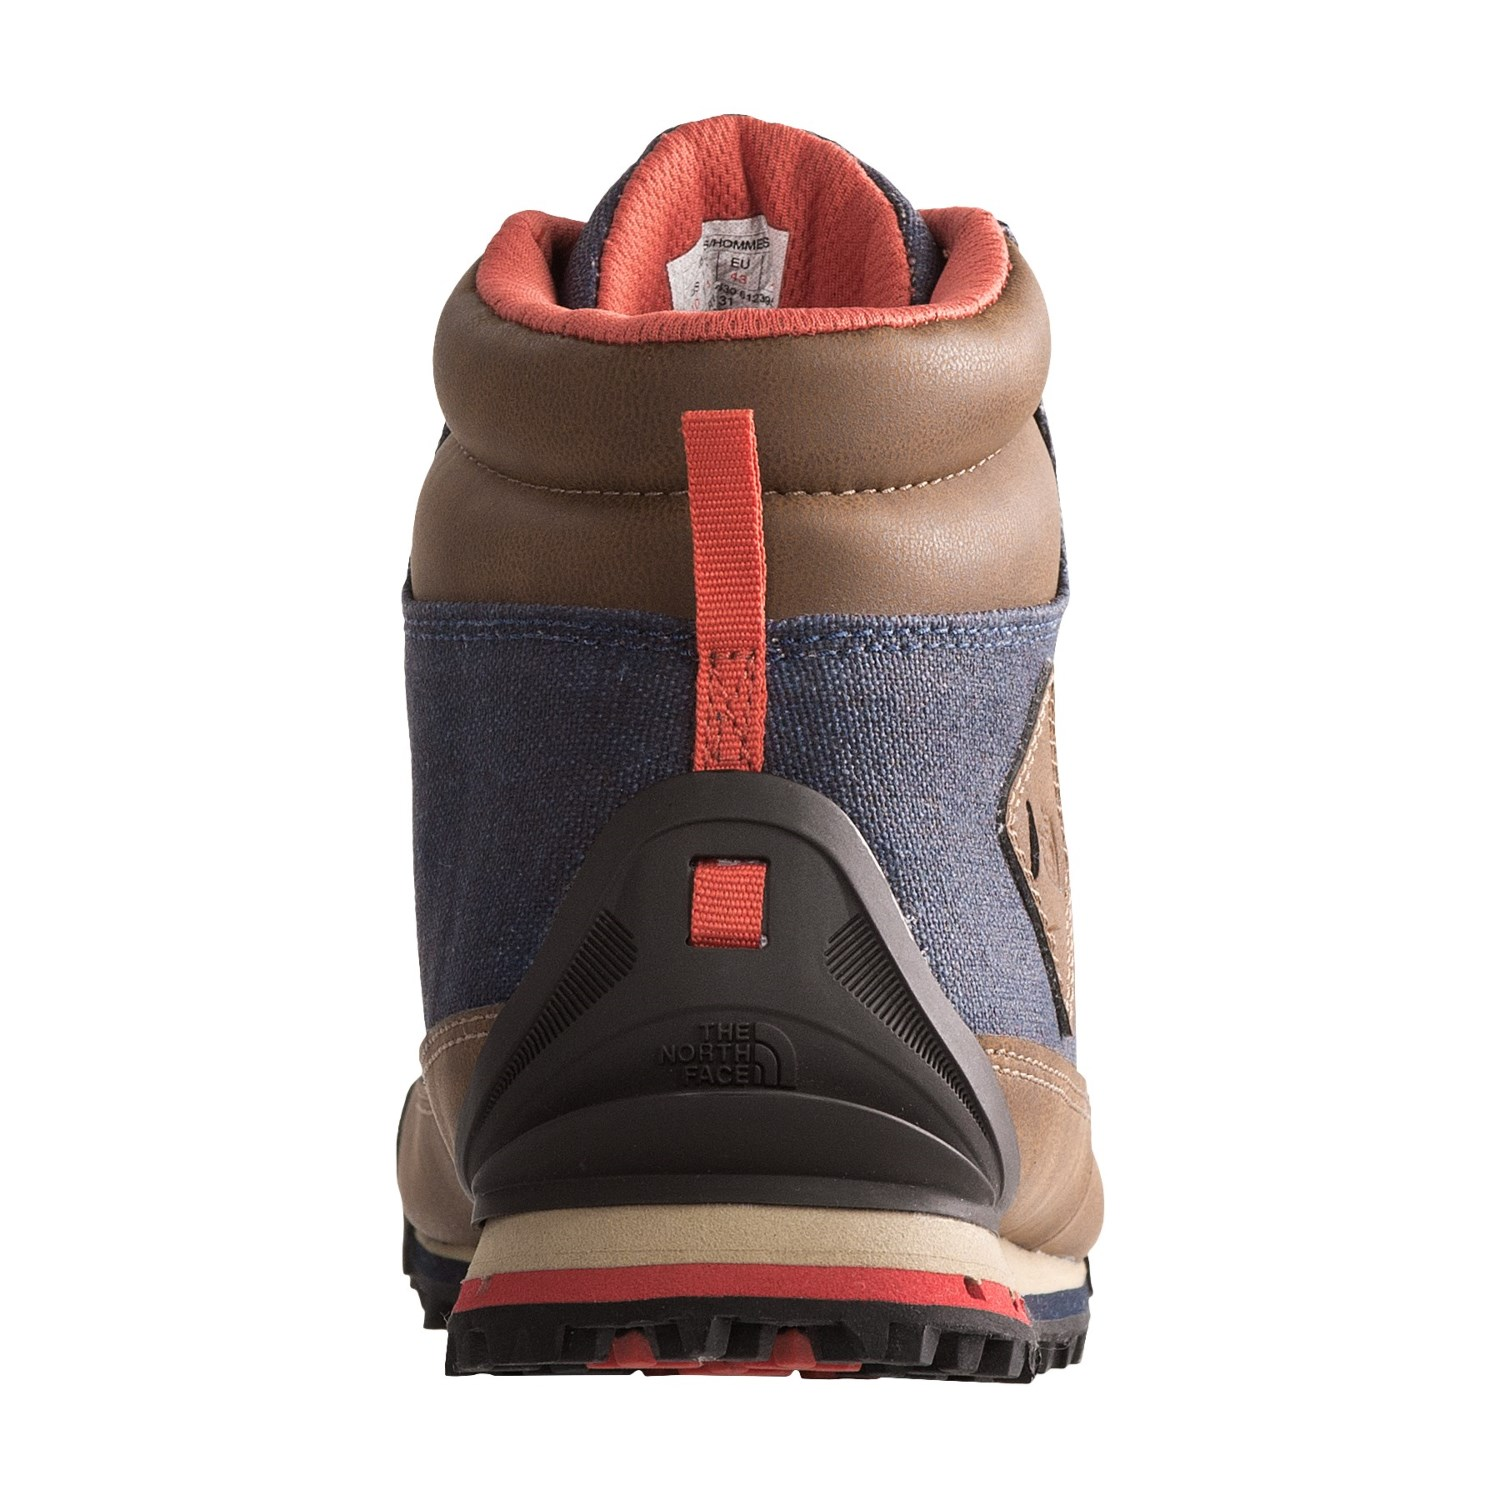 berkeley men The north face back to berkeley redux leather boots blend old-school outdoor aesthetics with new-school tech primaloft® insulation and hydroseal waterproof membranes take it back to the.